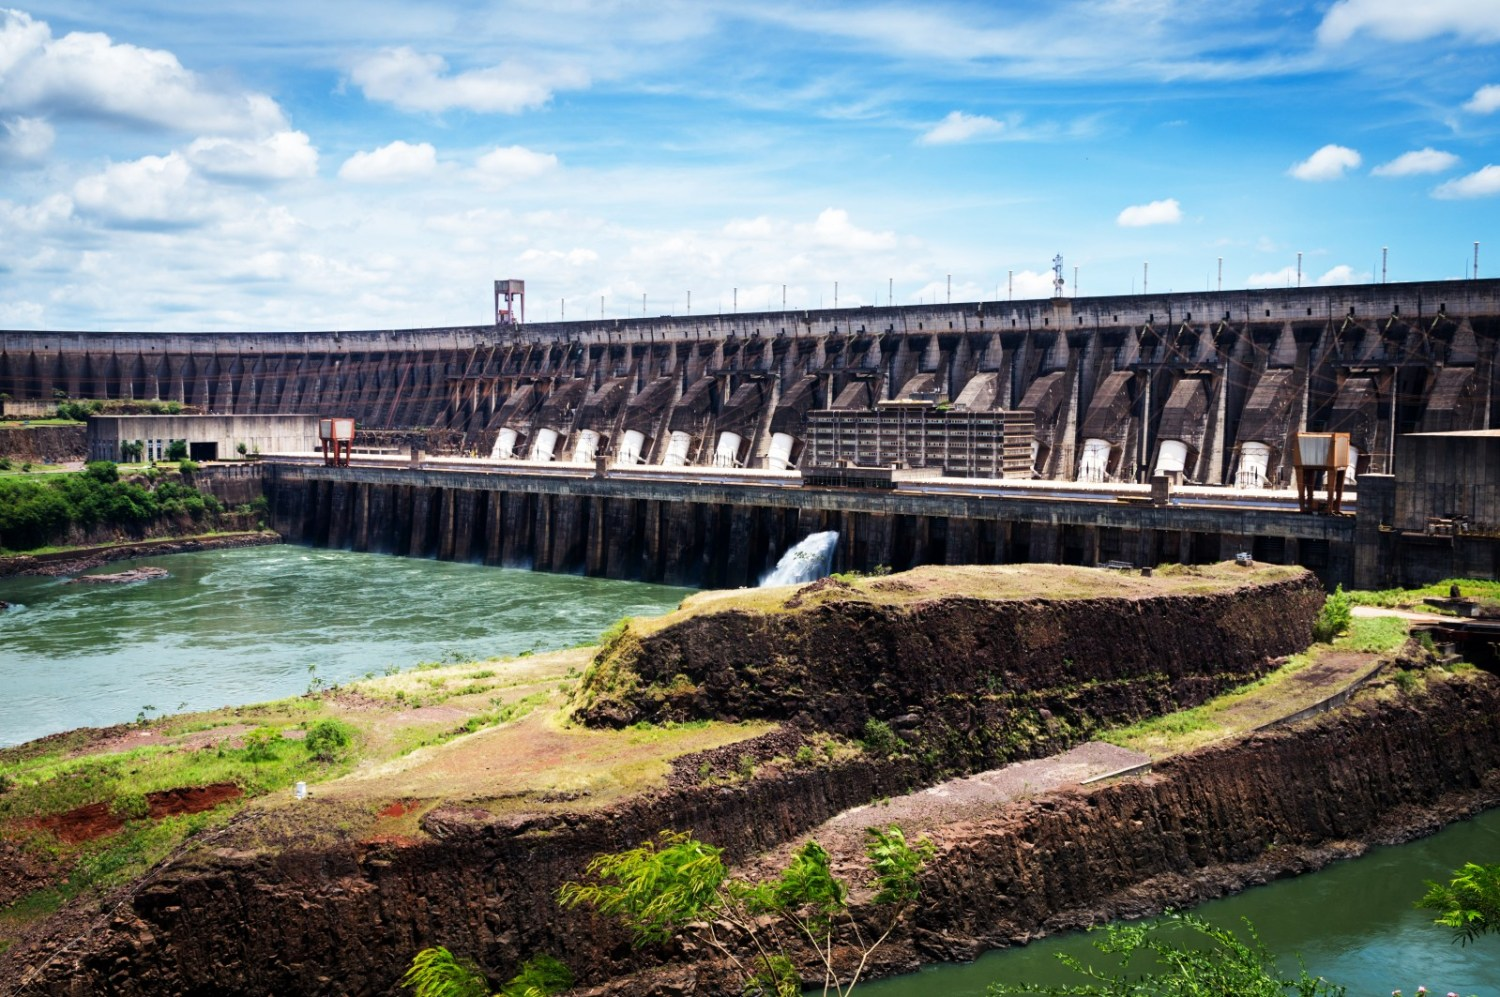 Hydropower provides more than three-quarters of Brazil's electricity. Recent droughts have called into question the reliability and economic performance of such dams. Photo courtesy Deni Williams via Flickr Creative Commons